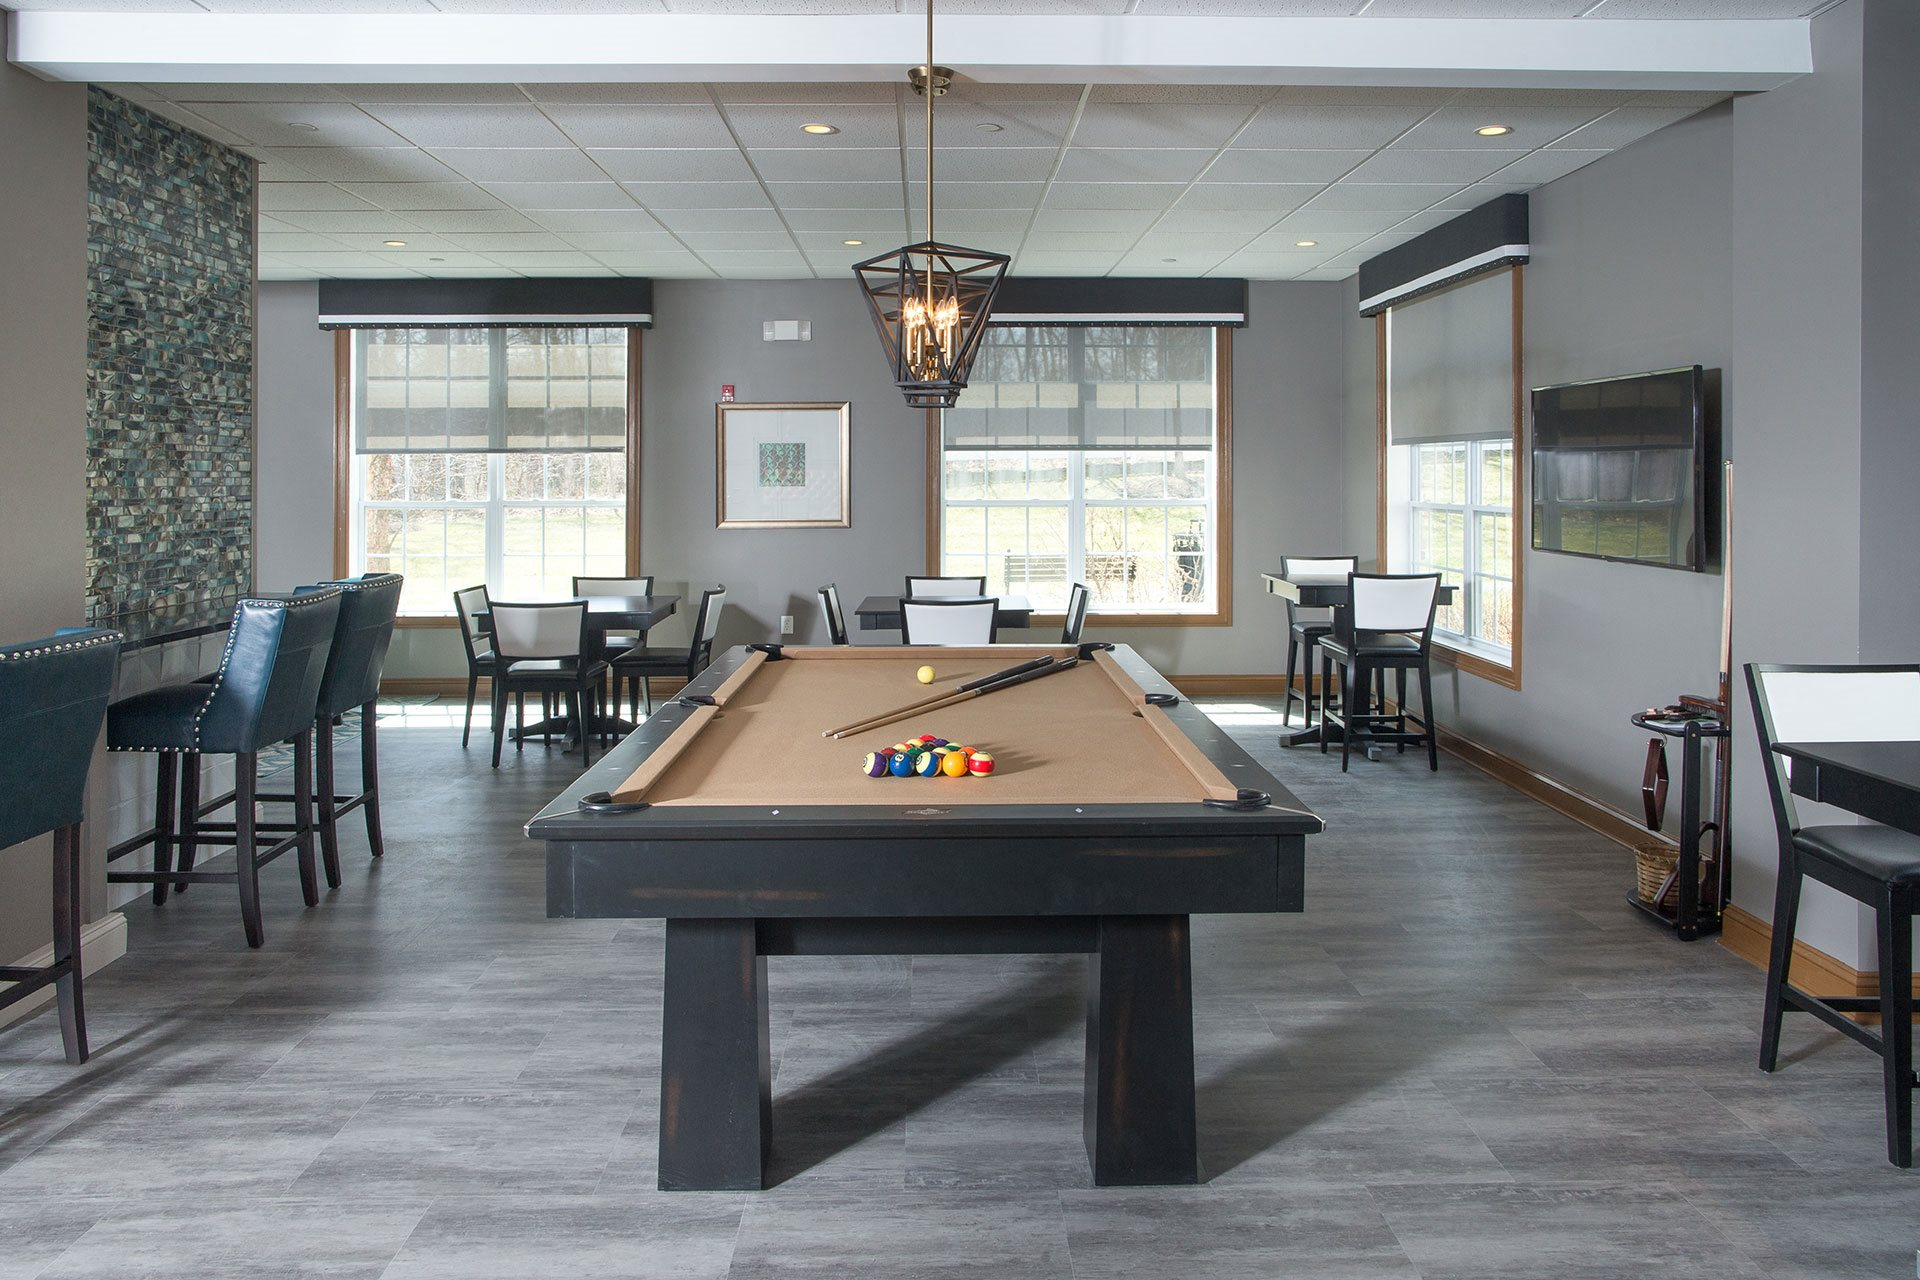 Billiards & Game Tables